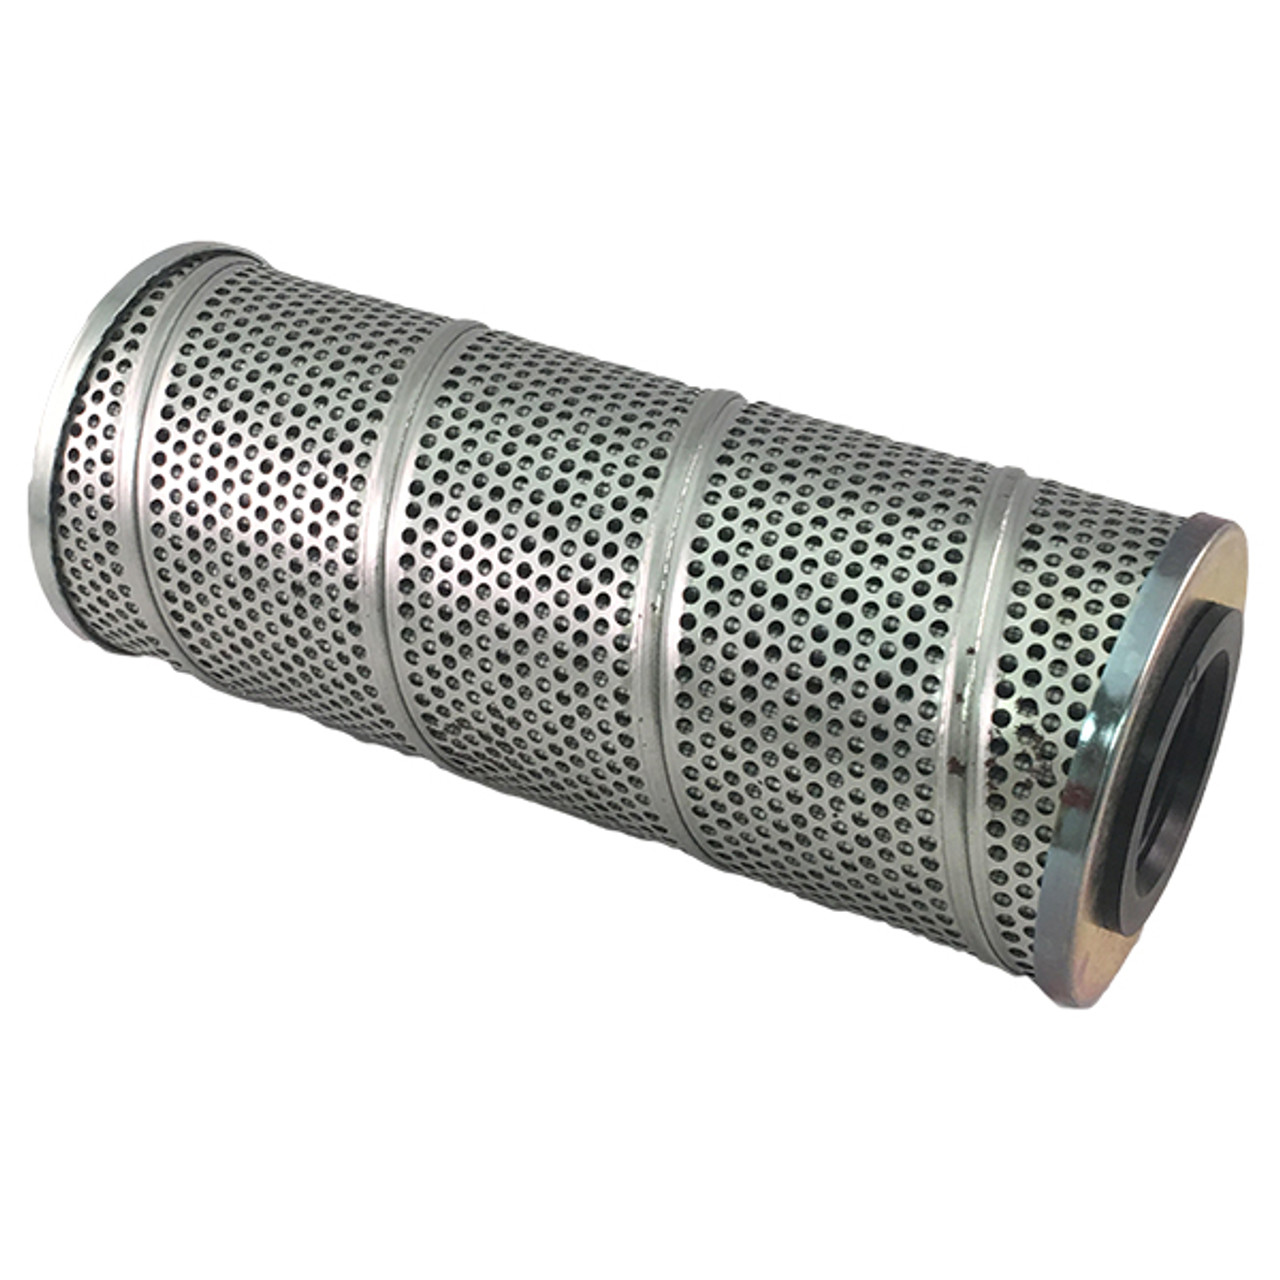 OBS Filter Cartridge (855133)